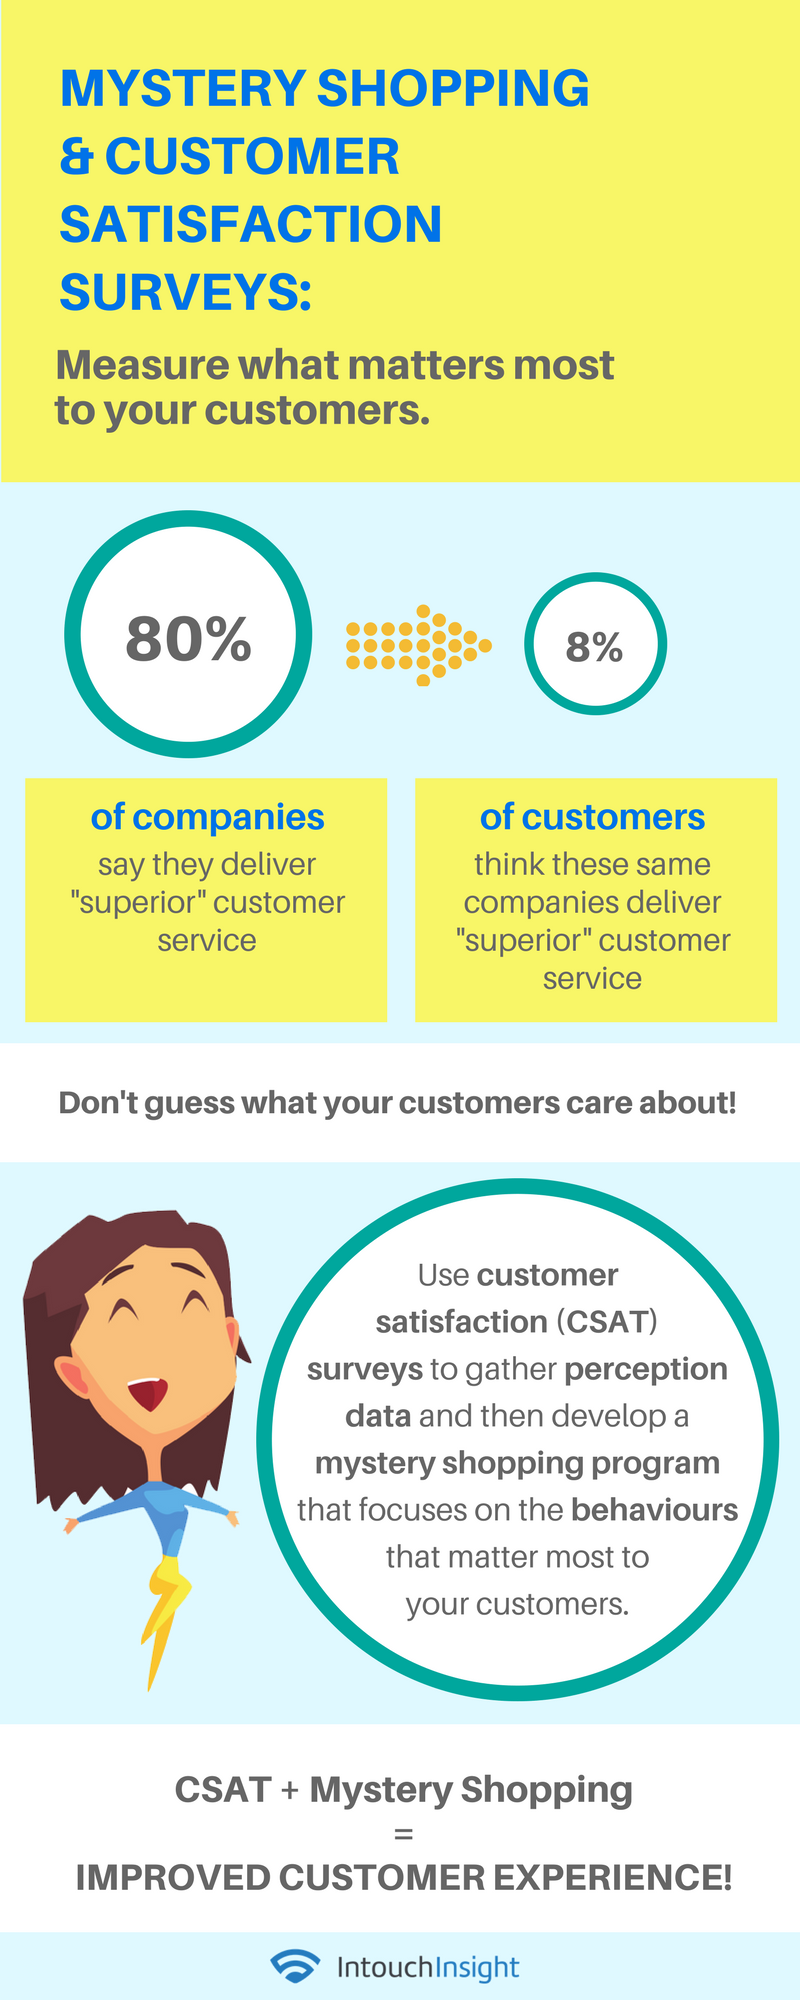 How to Improve Customer Experience with Mystery Shopping & CSAT Surveys